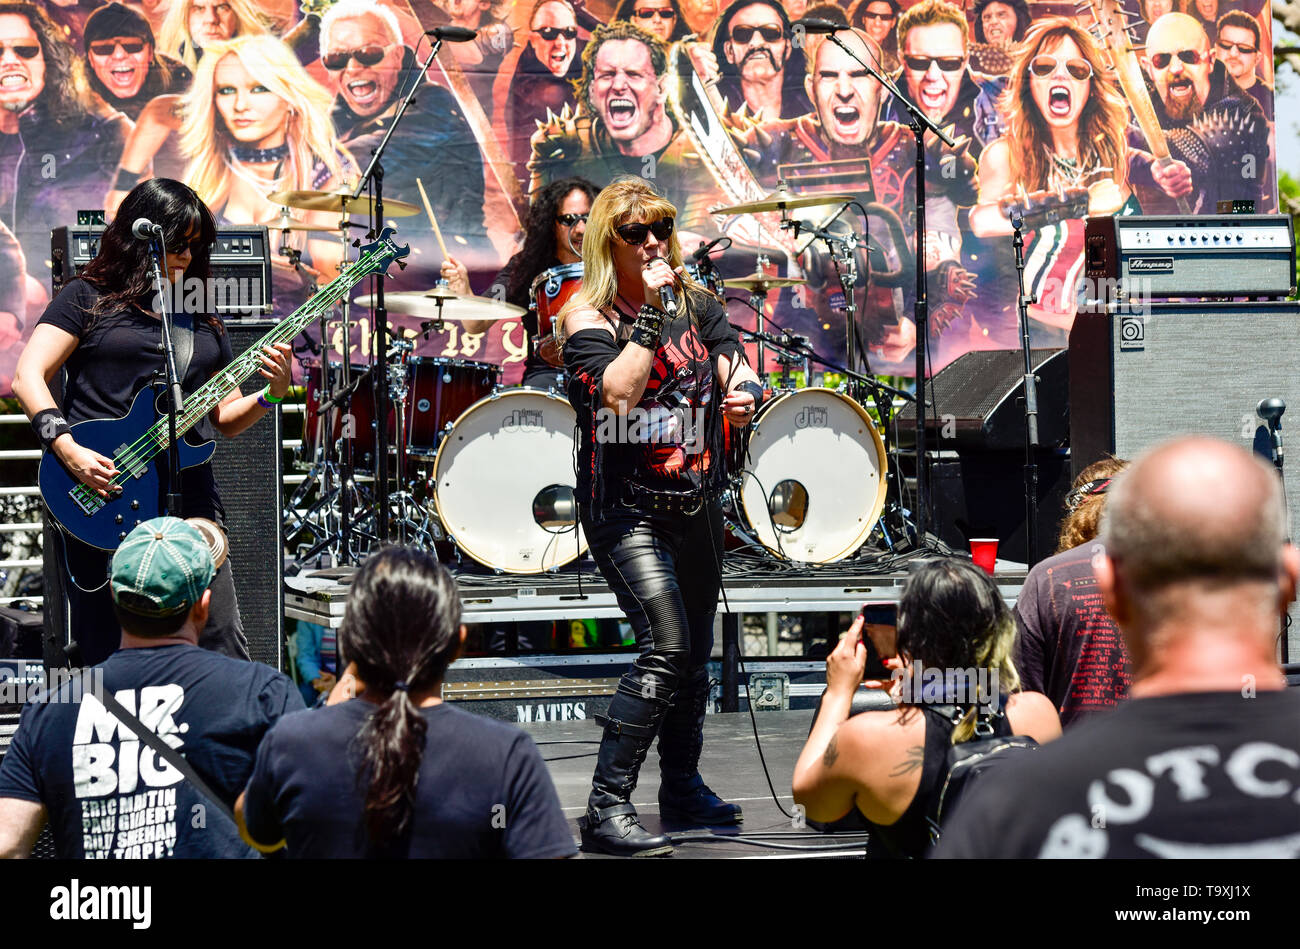 May 5, 2019, Encino, California, DIA on stage at the 2019 Ride for Ronnie charity concert at Los Encinos State Historic Park. Stock Photo